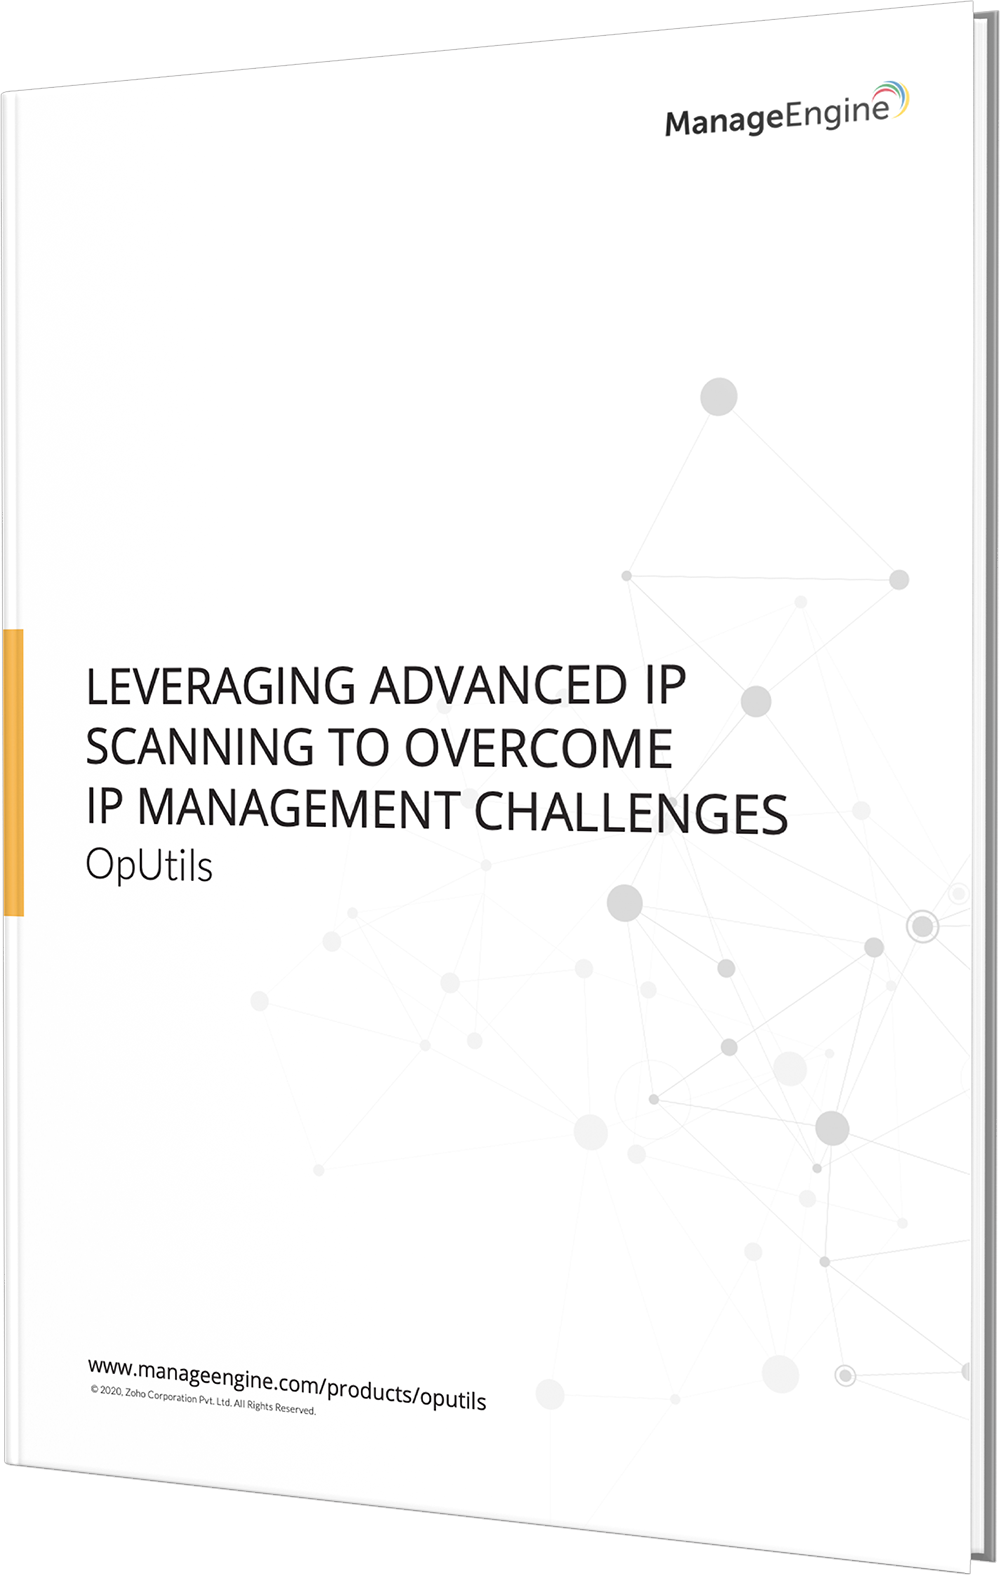 Leveraging advanced IP scanning to overcome IP management challenges